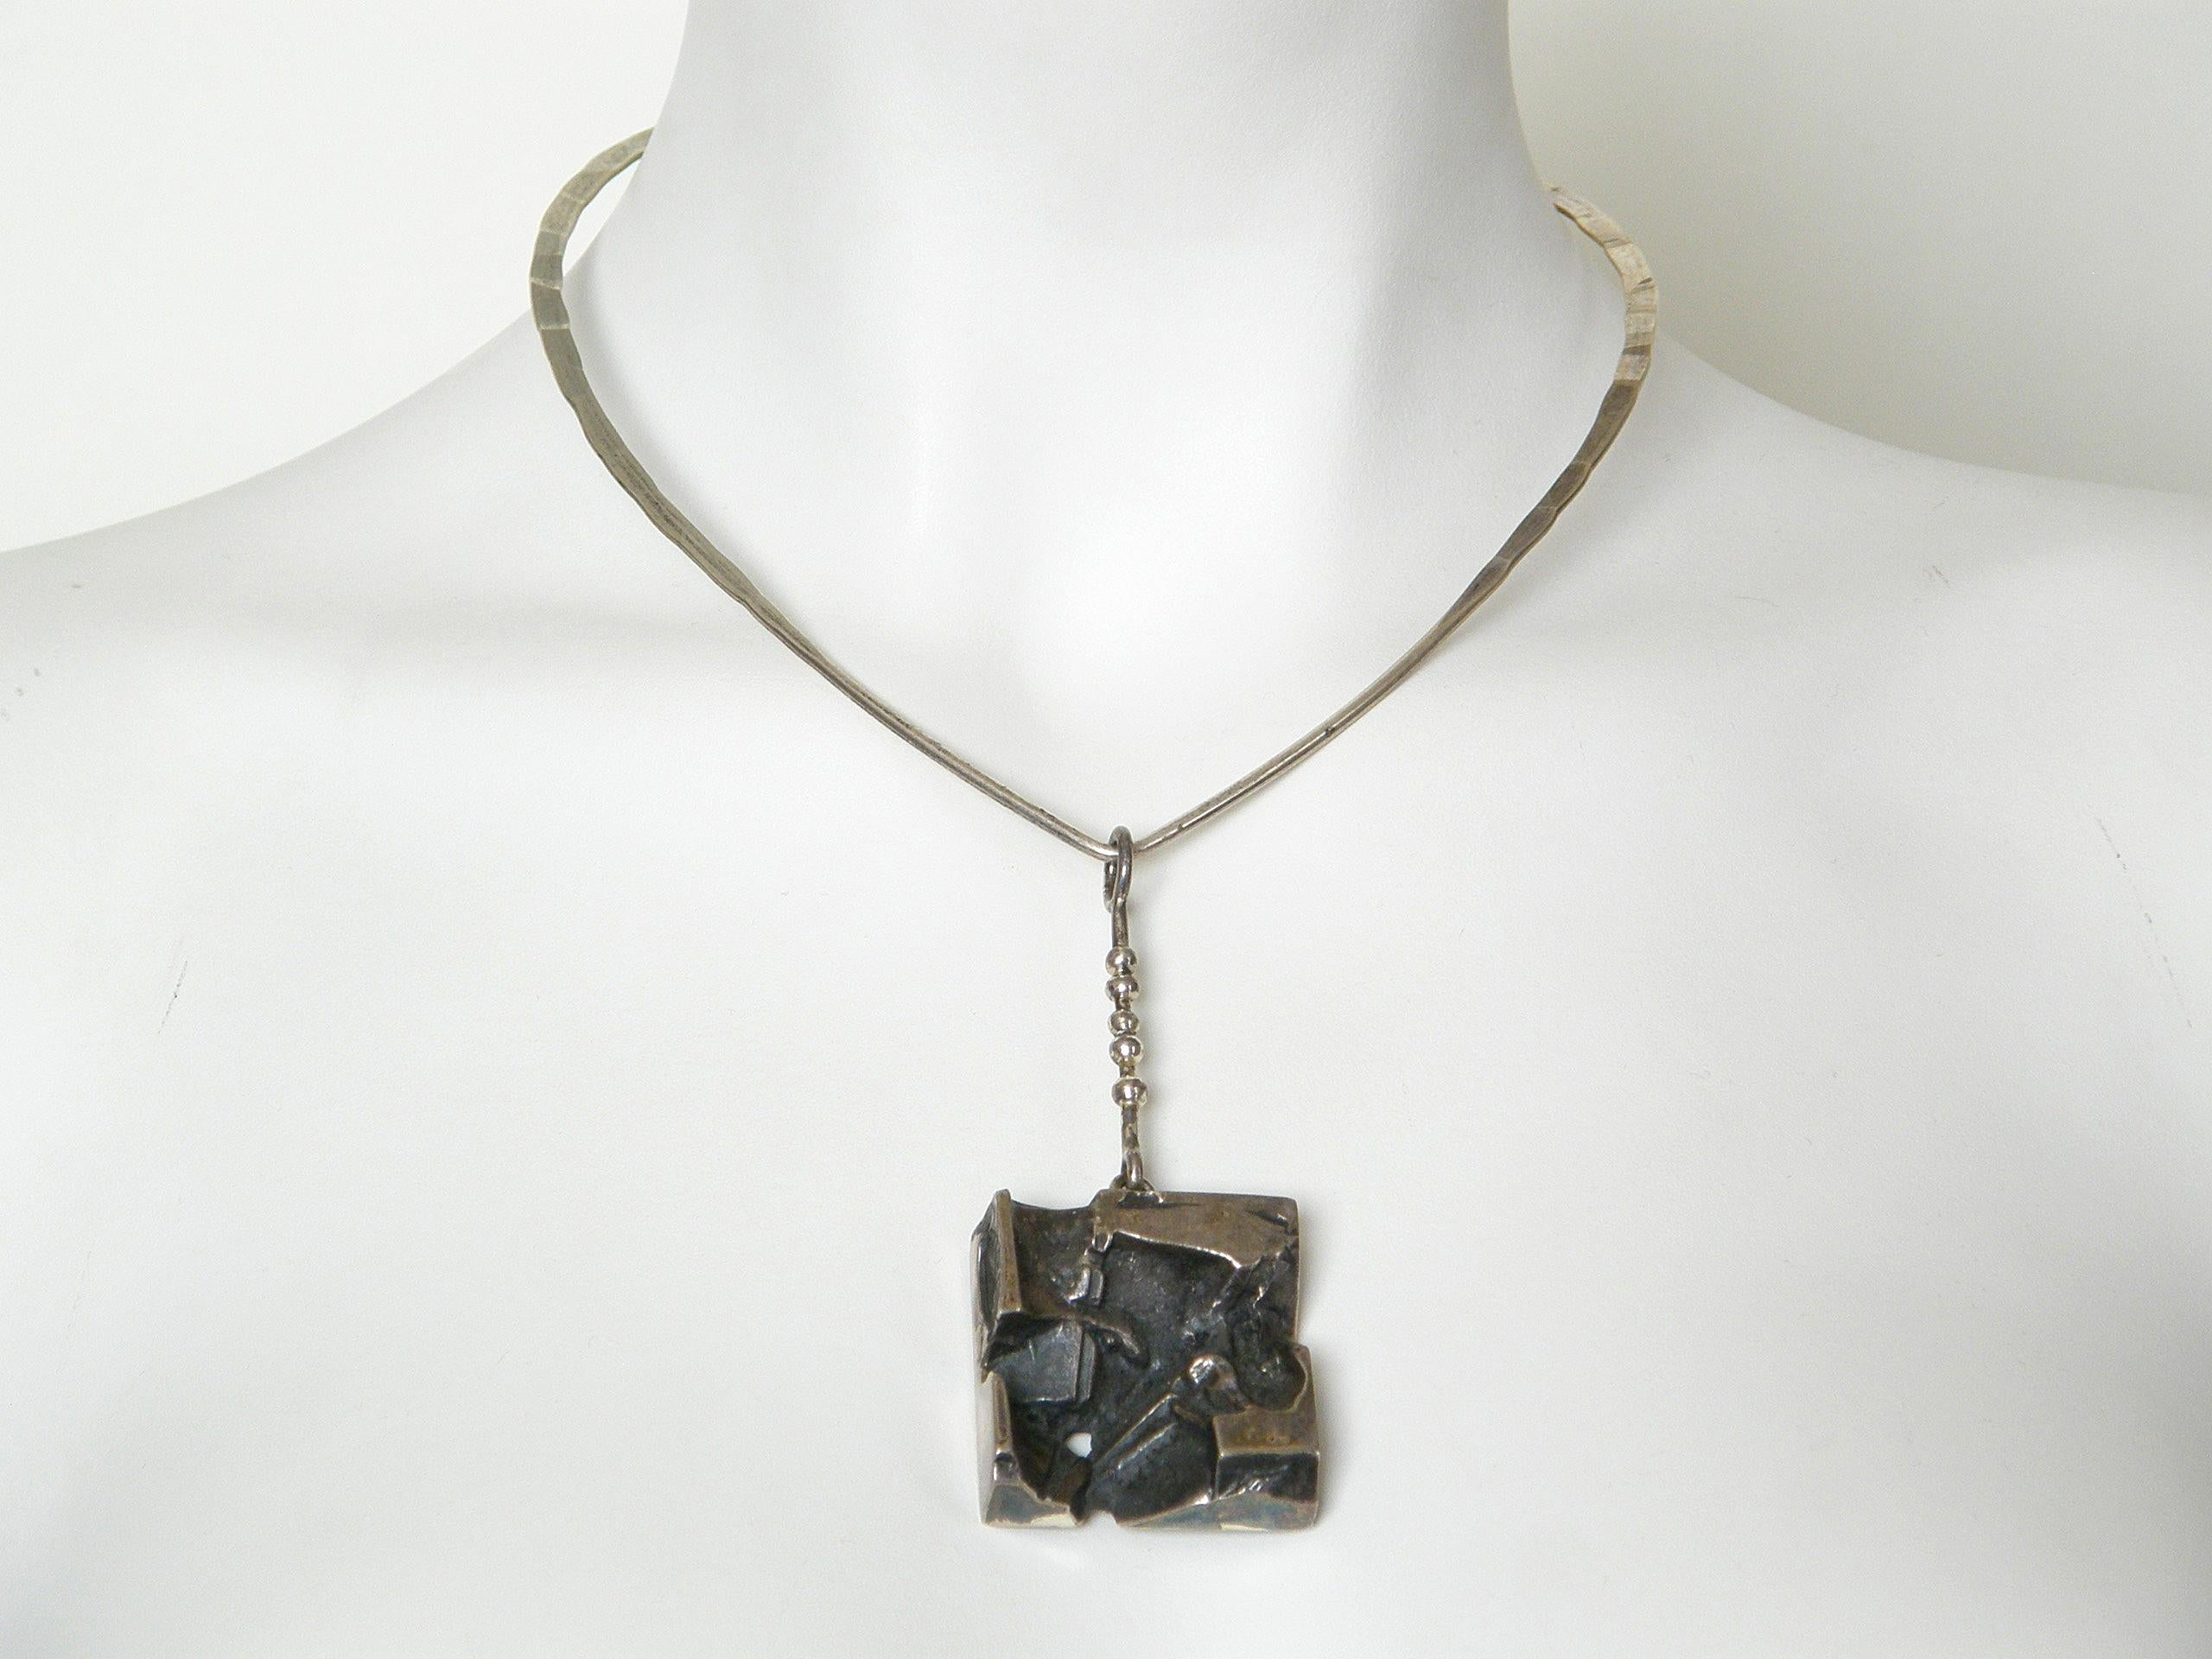 45a20e1de0d Sculptural Silver Jorma Laine Pendant on Sterling David-Andersen Neck Ring  For Sale at 1stdibs